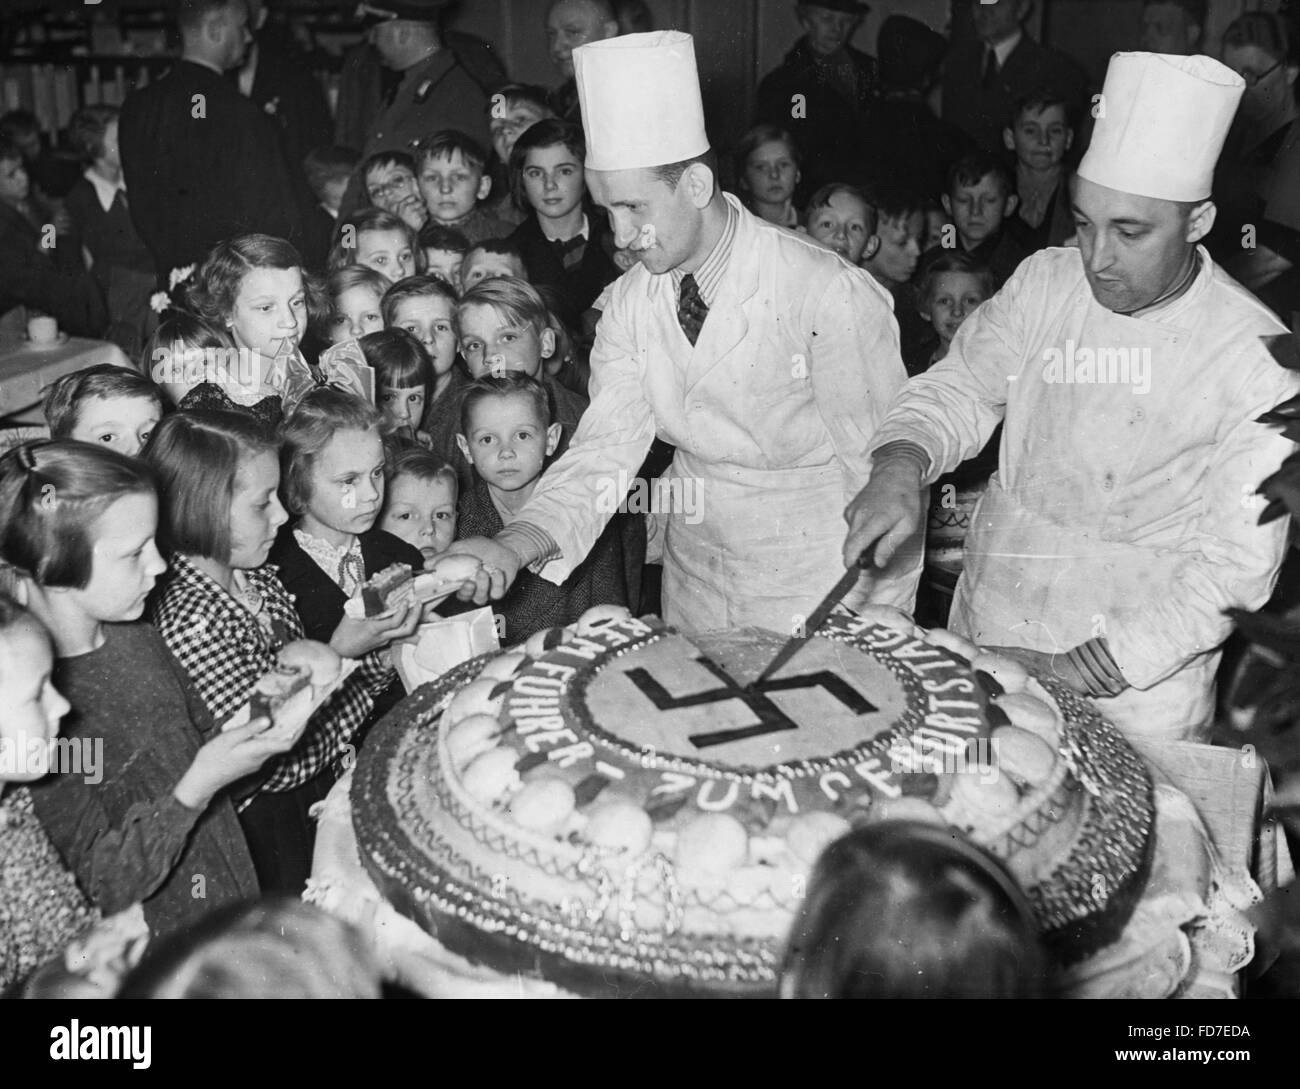 the birthday cake of adolf hitler is shared with children